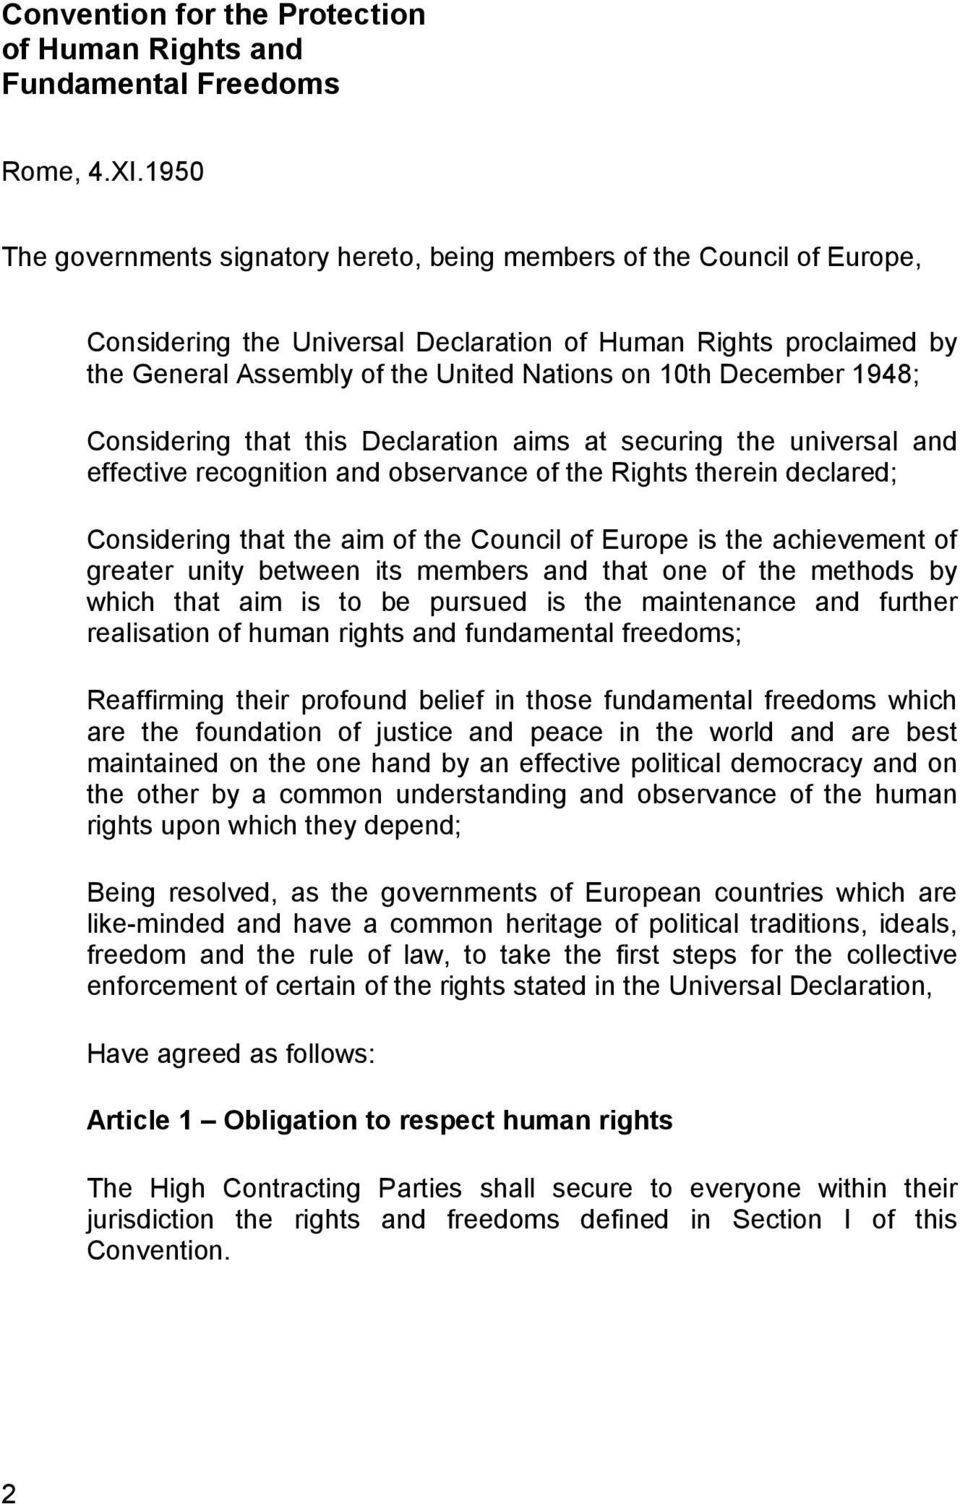 December 1948; Considering that this Declaration aims at securing the universal and effective recognition and observance of the Rights therein declared; Considering that the aim of the Council of